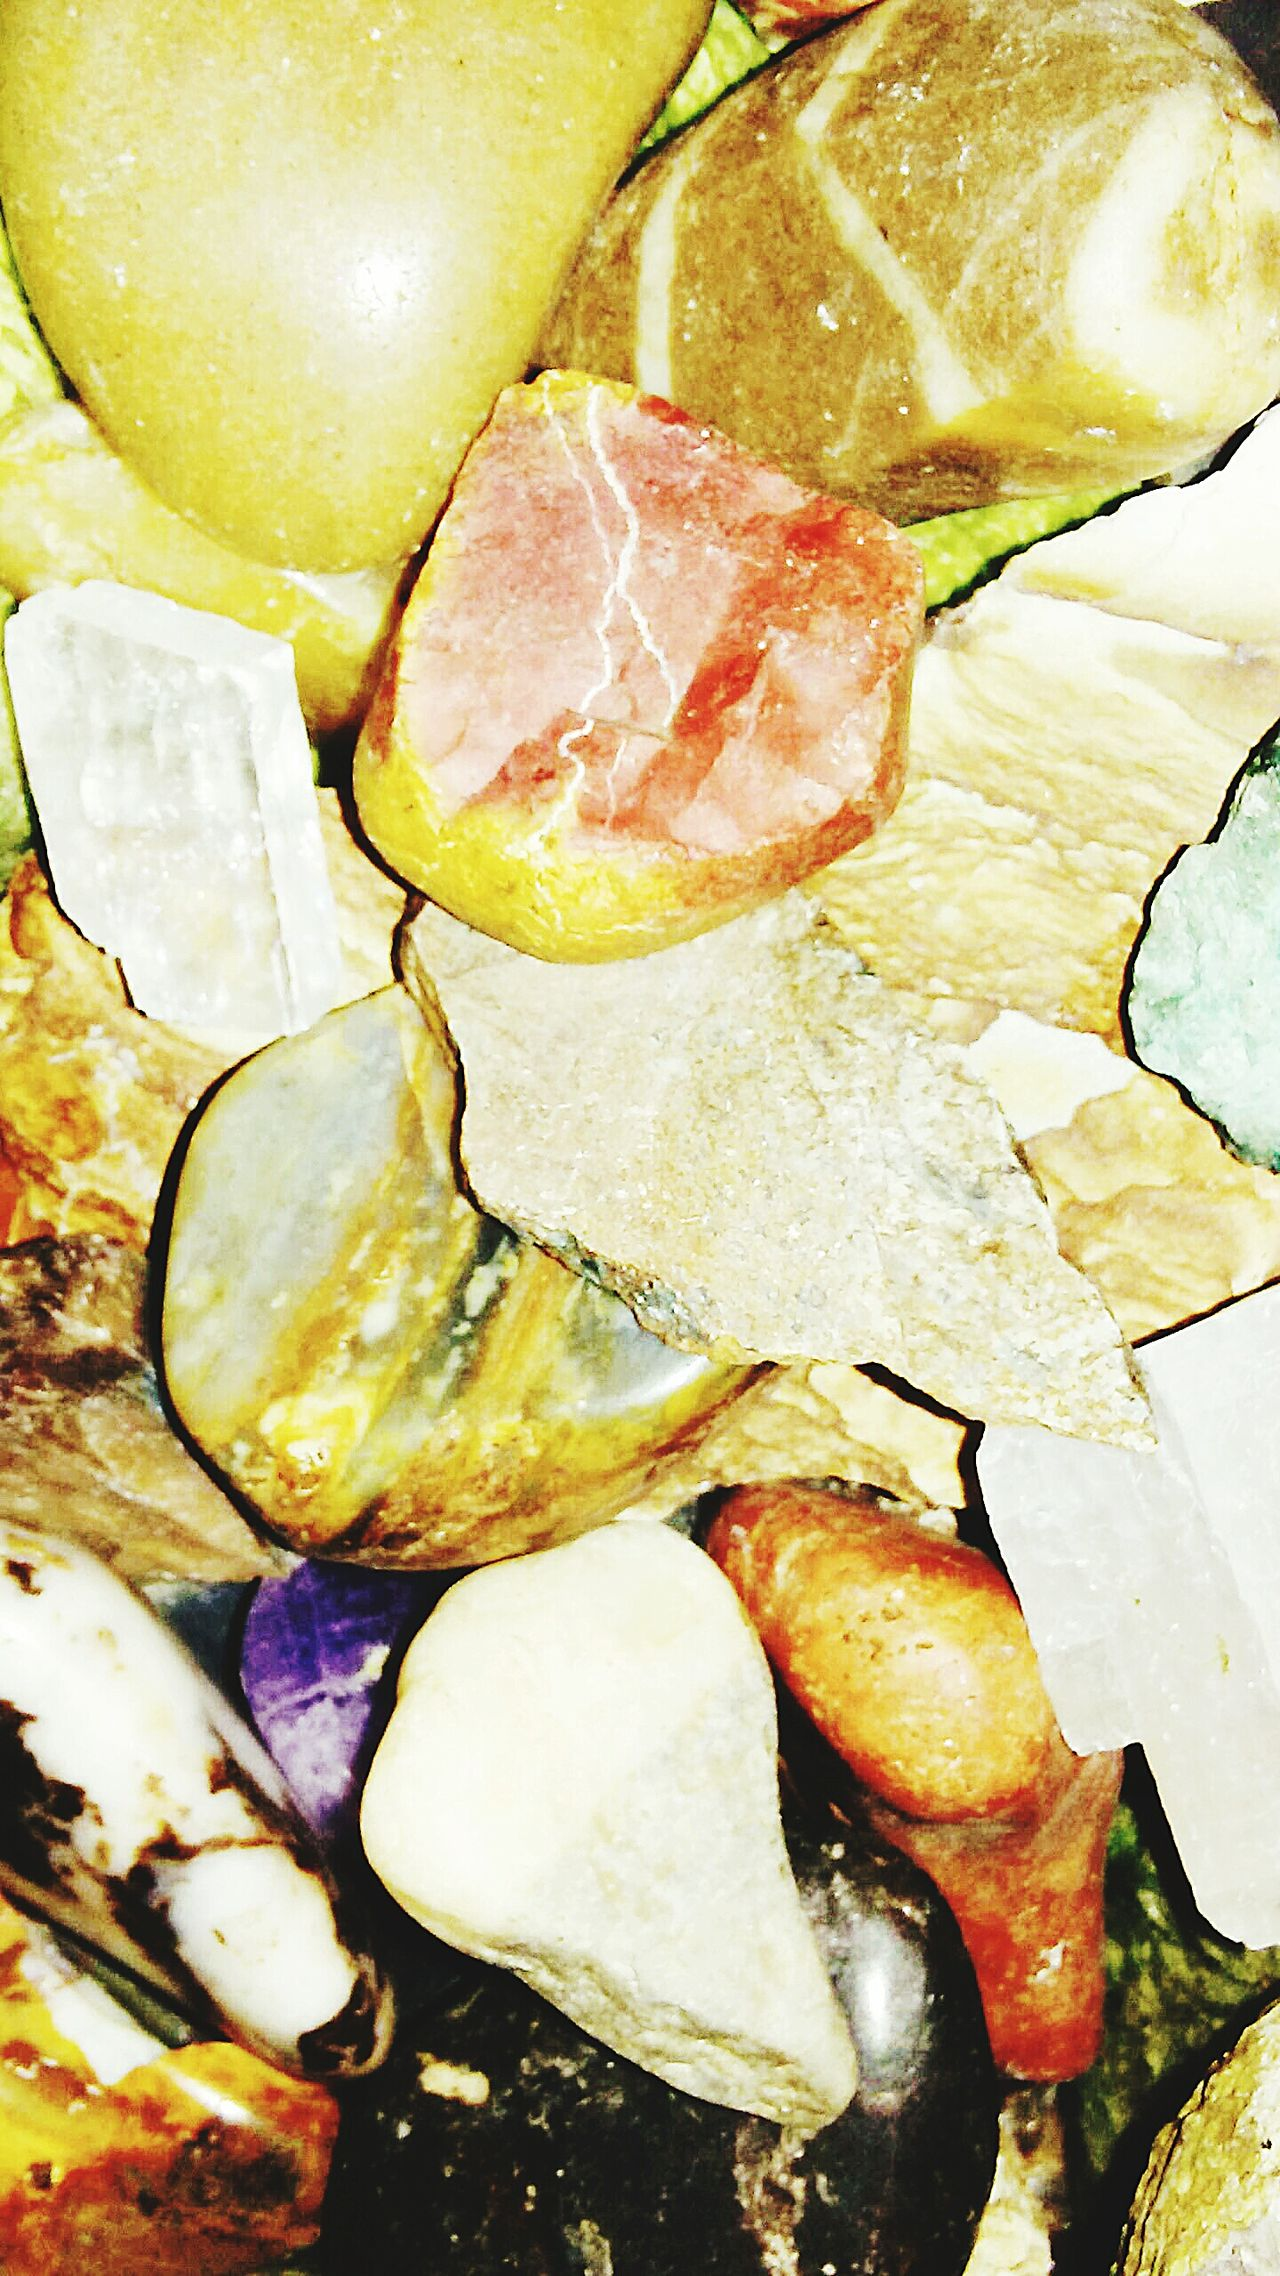 Close-up No People Backgrounds EyEmNewHere Textured  Full Frame Large Group Of Objects Landscape Lieblingsteil Uniqueness Indoors  Geology Nature Pile Of Stones Rocks Shiny Collections Science Rocks Collecting Rocks Beauty In Nature EyeEmNewHere